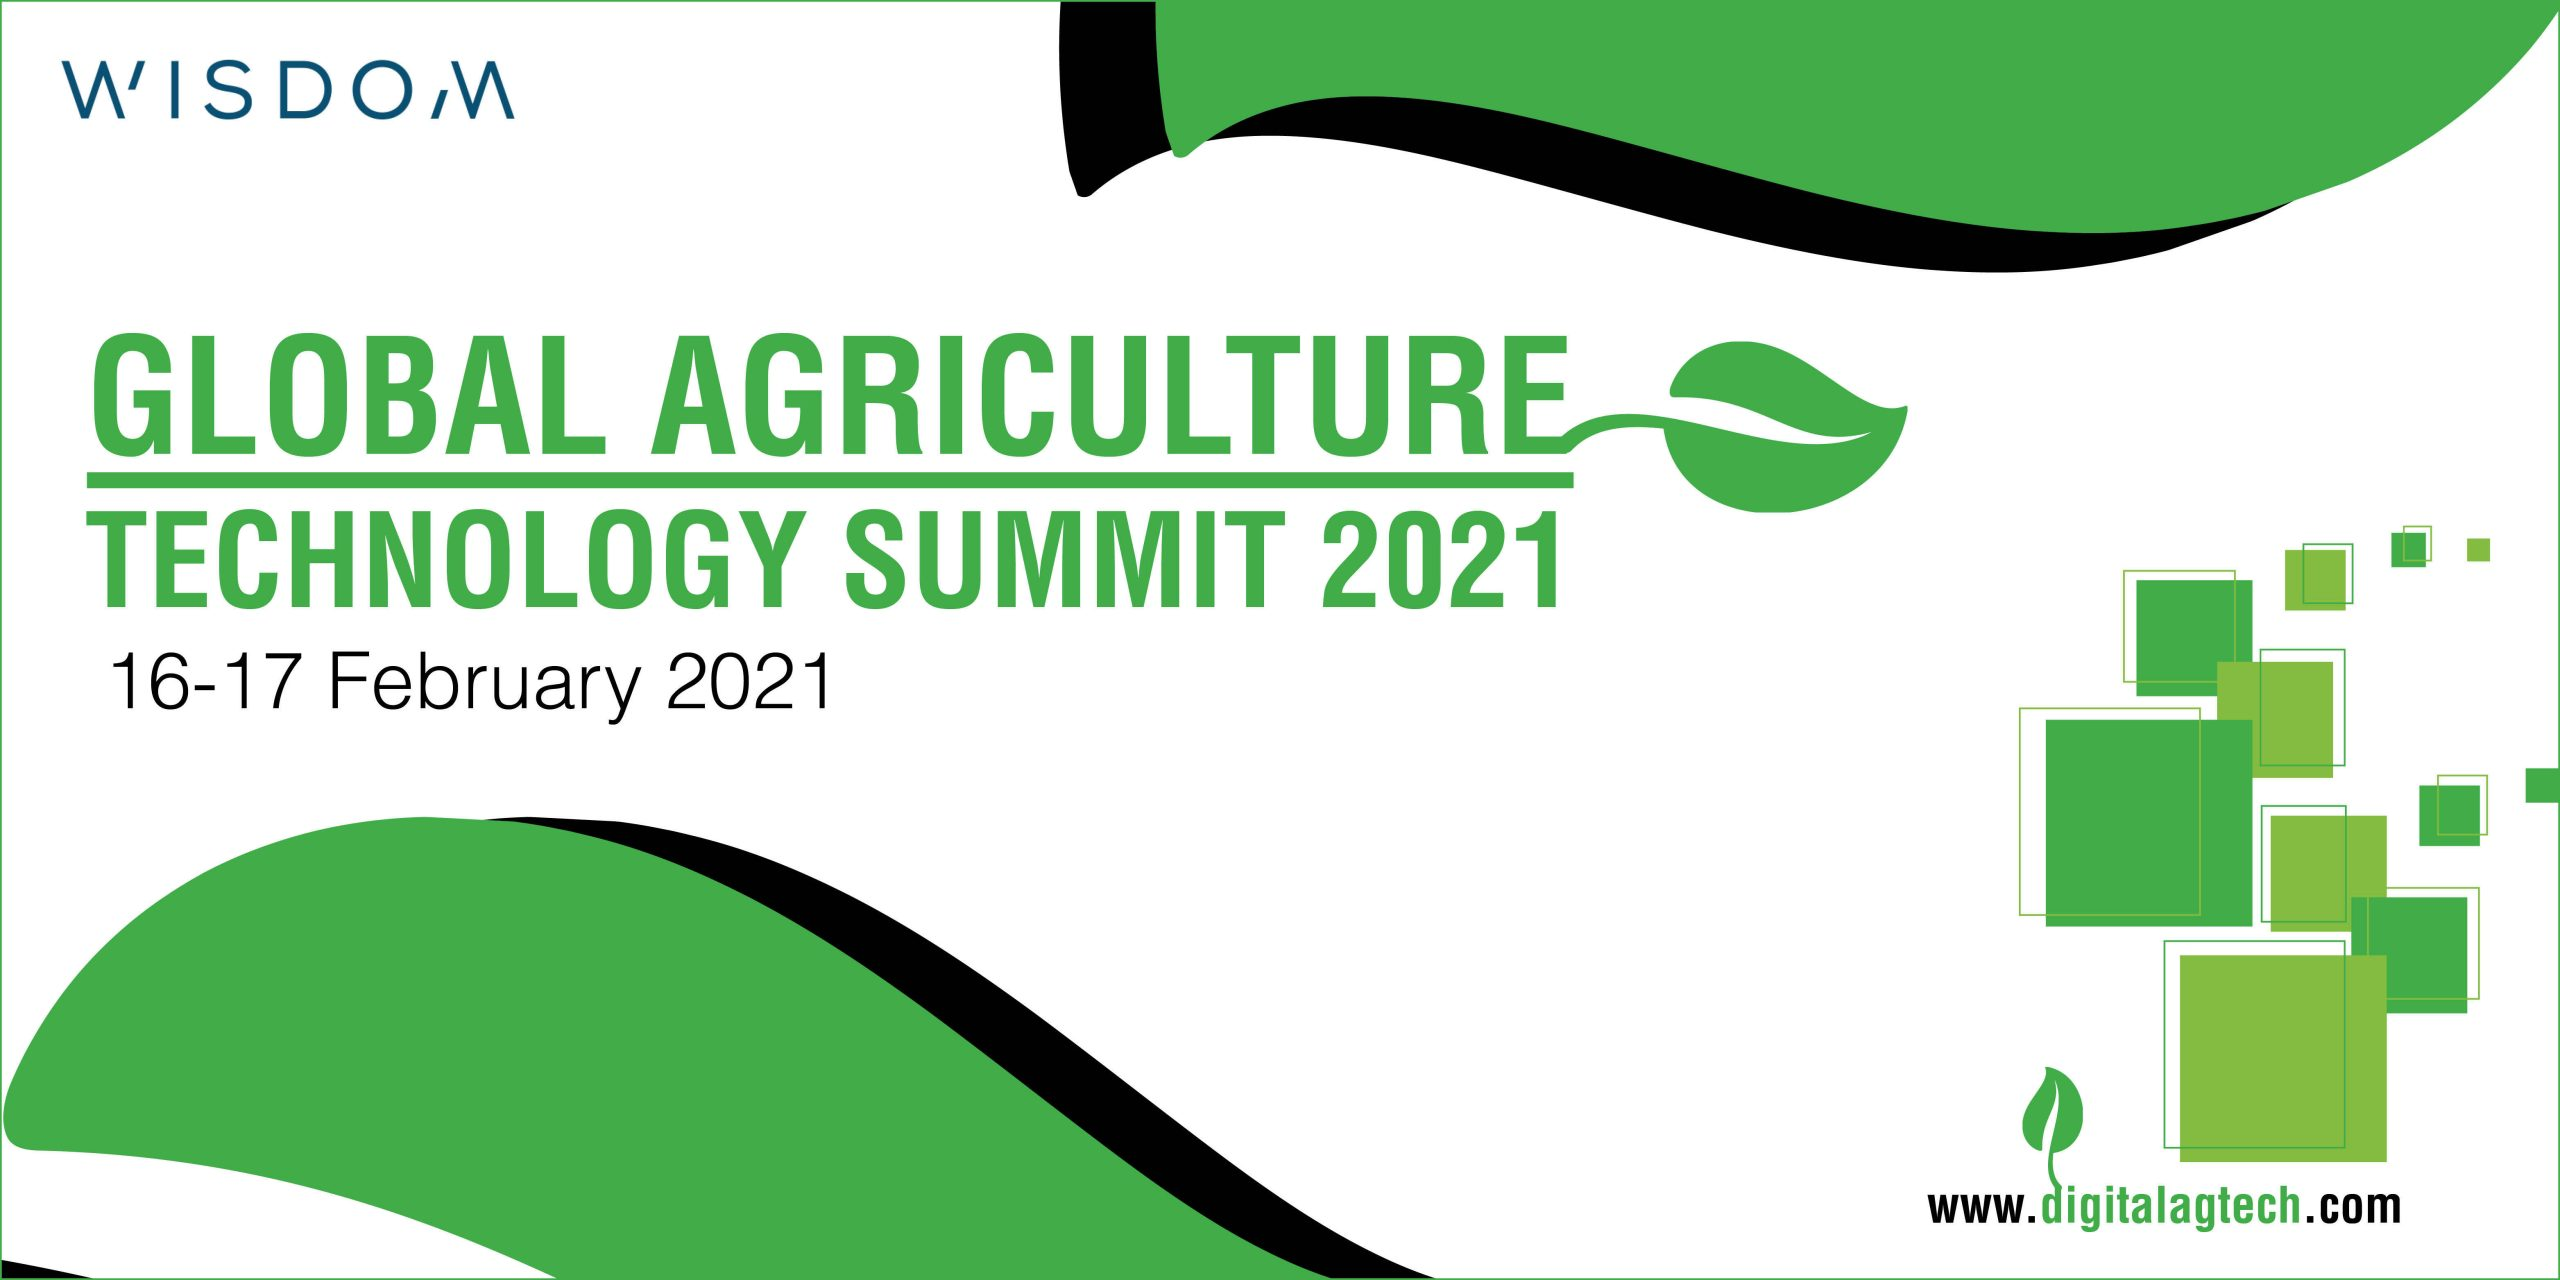 GLOBAL AGRICULTURE TECHNOLOGY SUMMIT 2021